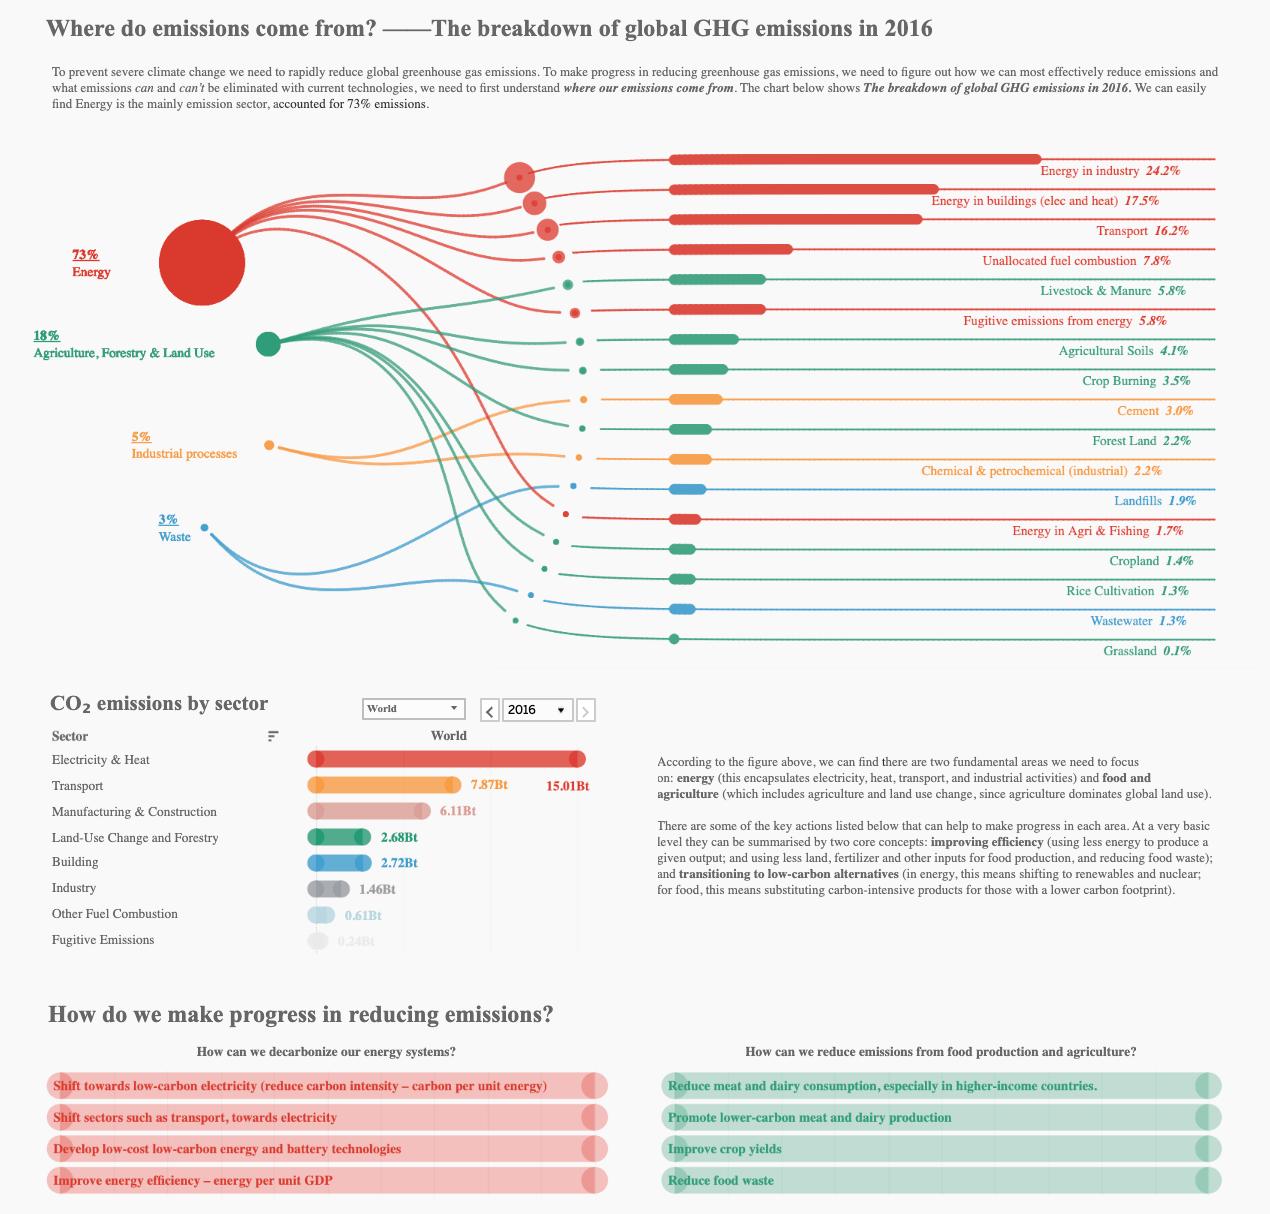 Where do emissions come from?